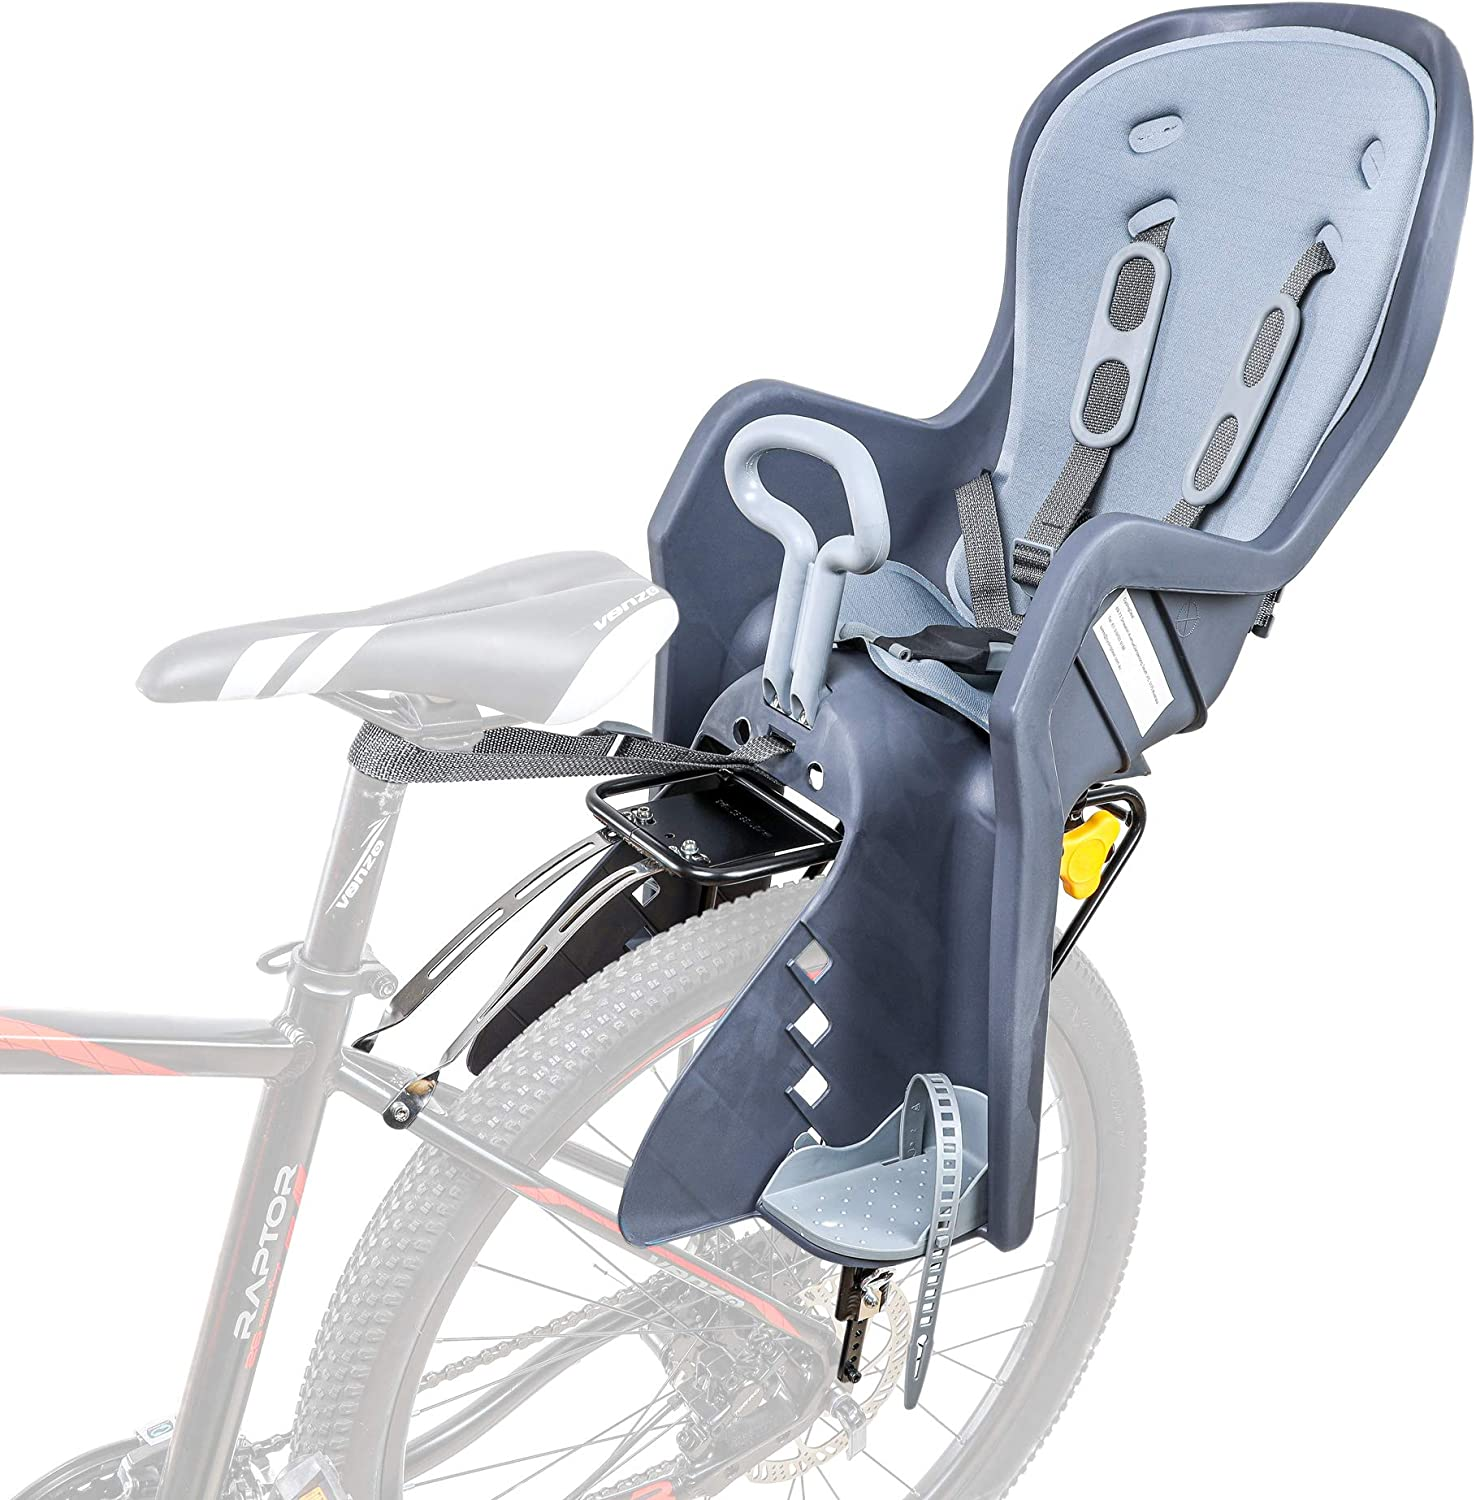 Bicycle Kids Child Front Rear Back Baby Seat Bike Carrier w// Handrail 25kg Max ~